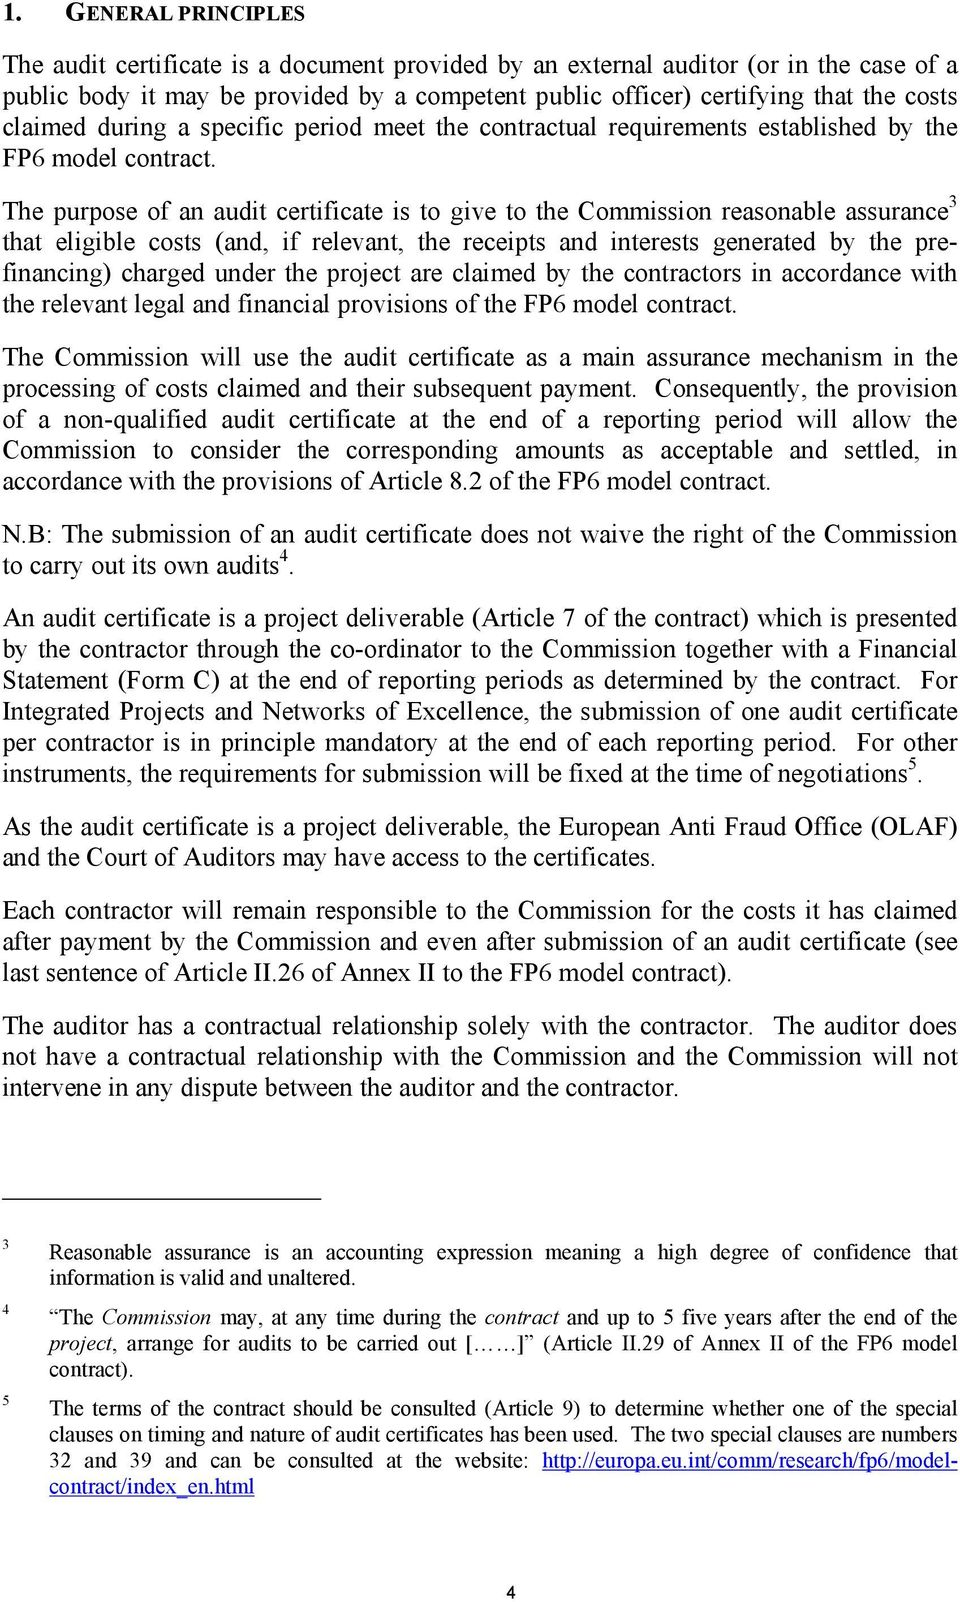 The purpose of an audit certificate is to give to the Commission reasonable assurance 3 that eligible costs (and, if relevant, the receipts and interests generated by the prefinancing) charged under